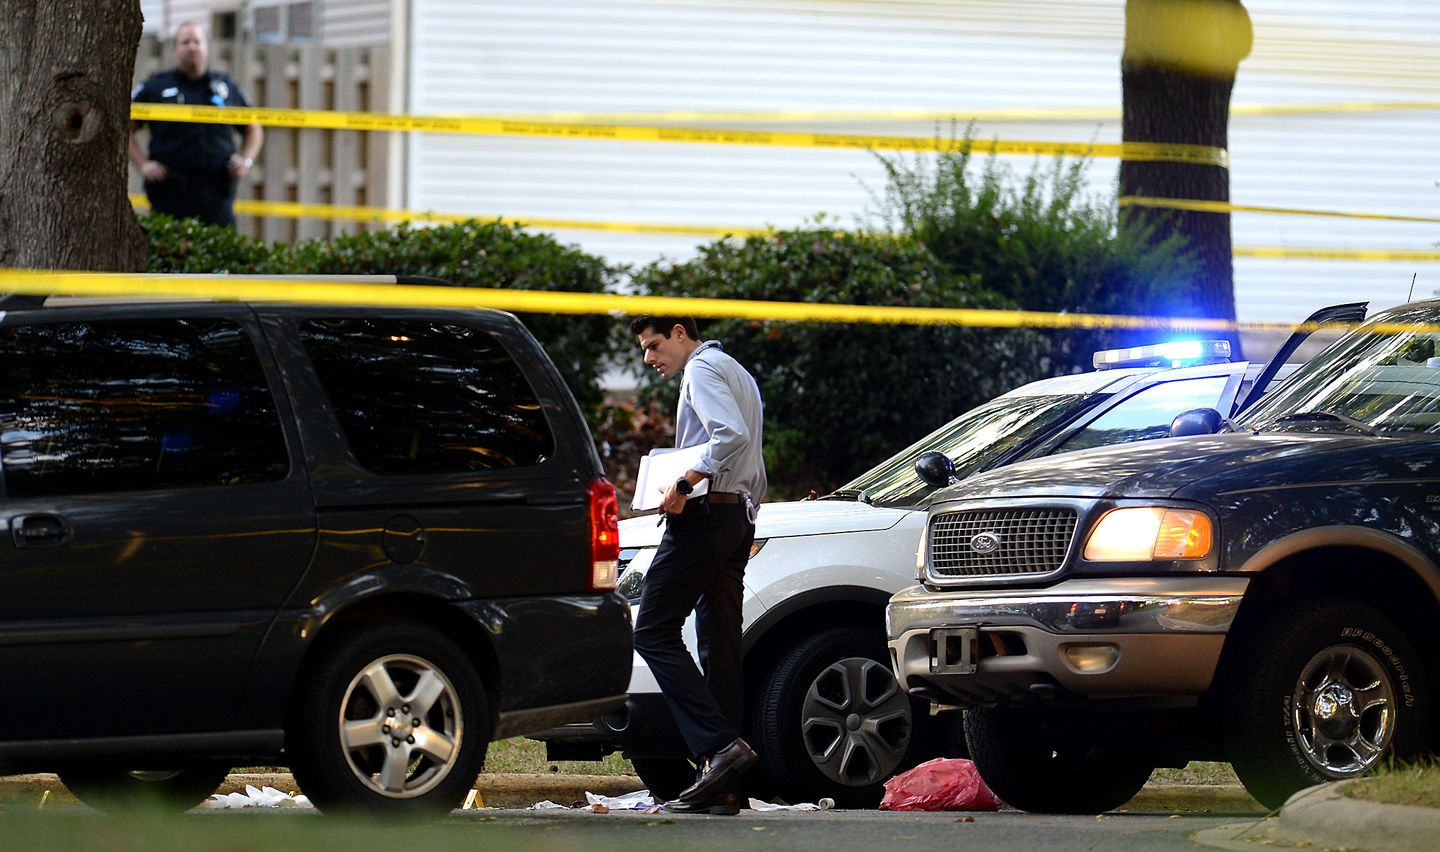 bde9f10c39a9 Charlotte officials investigated the scene of Tuesday s fatal police  shooting of a black man